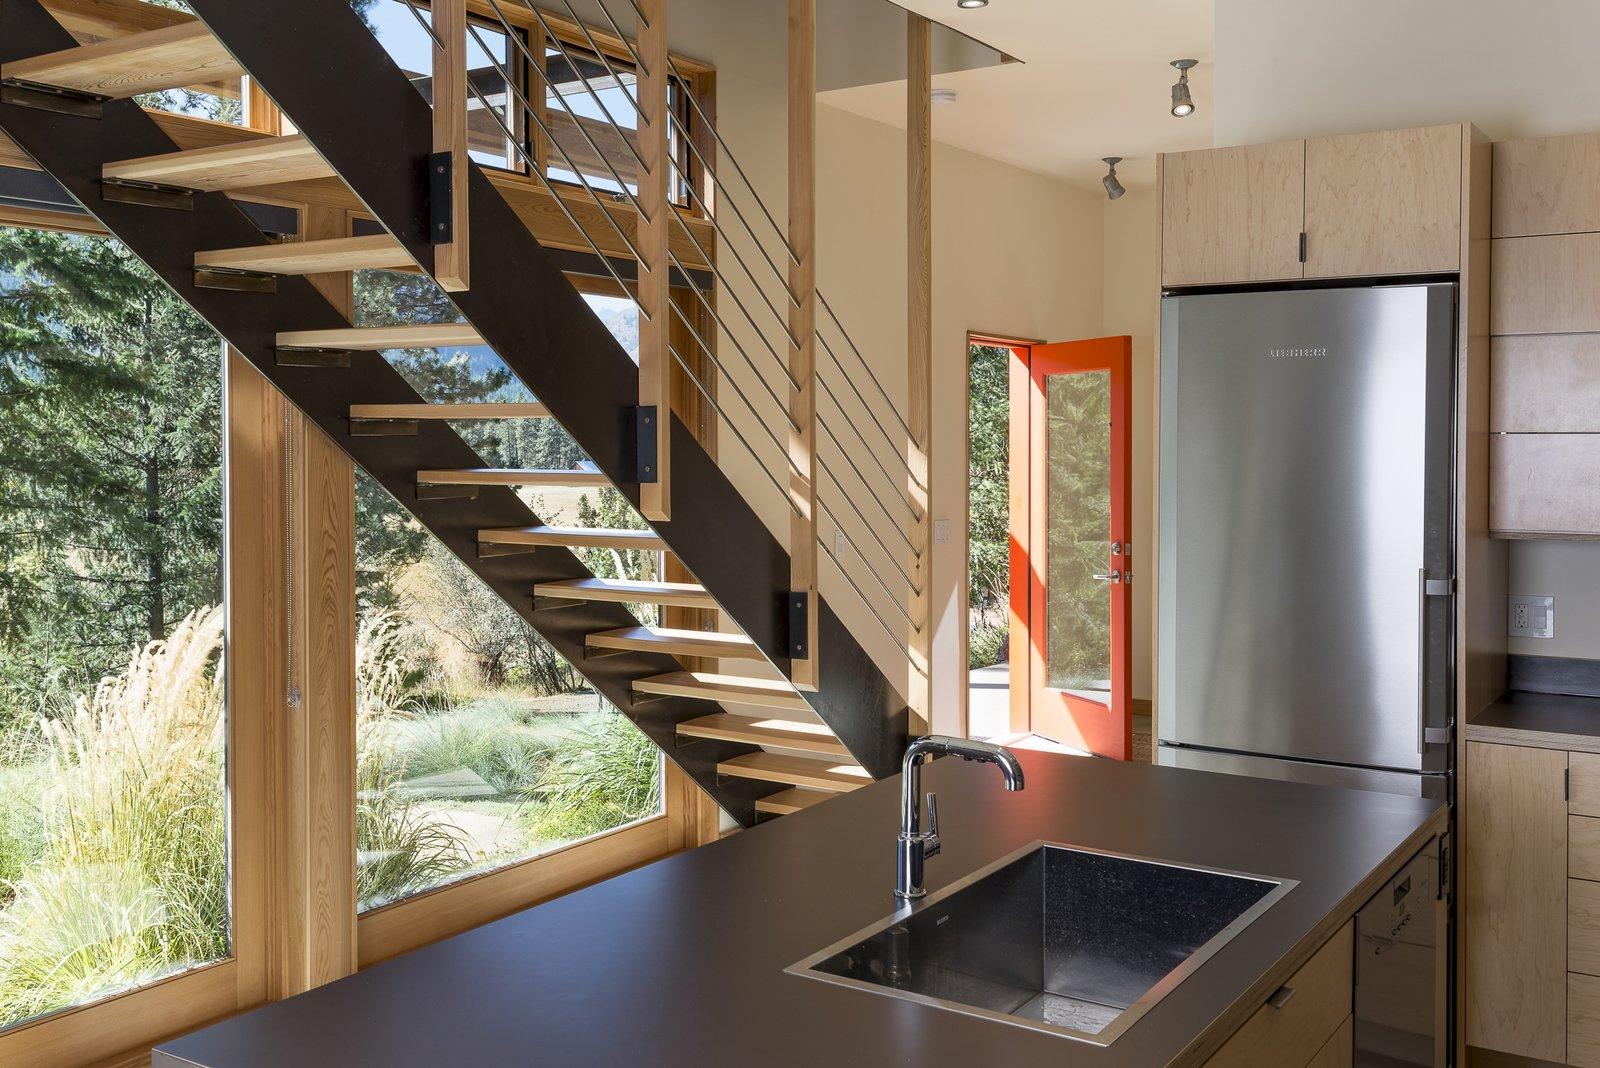 Kitchen, Laminate Counter, Wood Cabinet, Refrigerator, Ceiling Lighting, Concrete Floor, and Drop In Sink An open-tread stair keeps the relatively small space from feeling cluttered or closed off from the view at the entry and kitchen.  Chechaquo by Prentiss + Balance + Wickline Architects